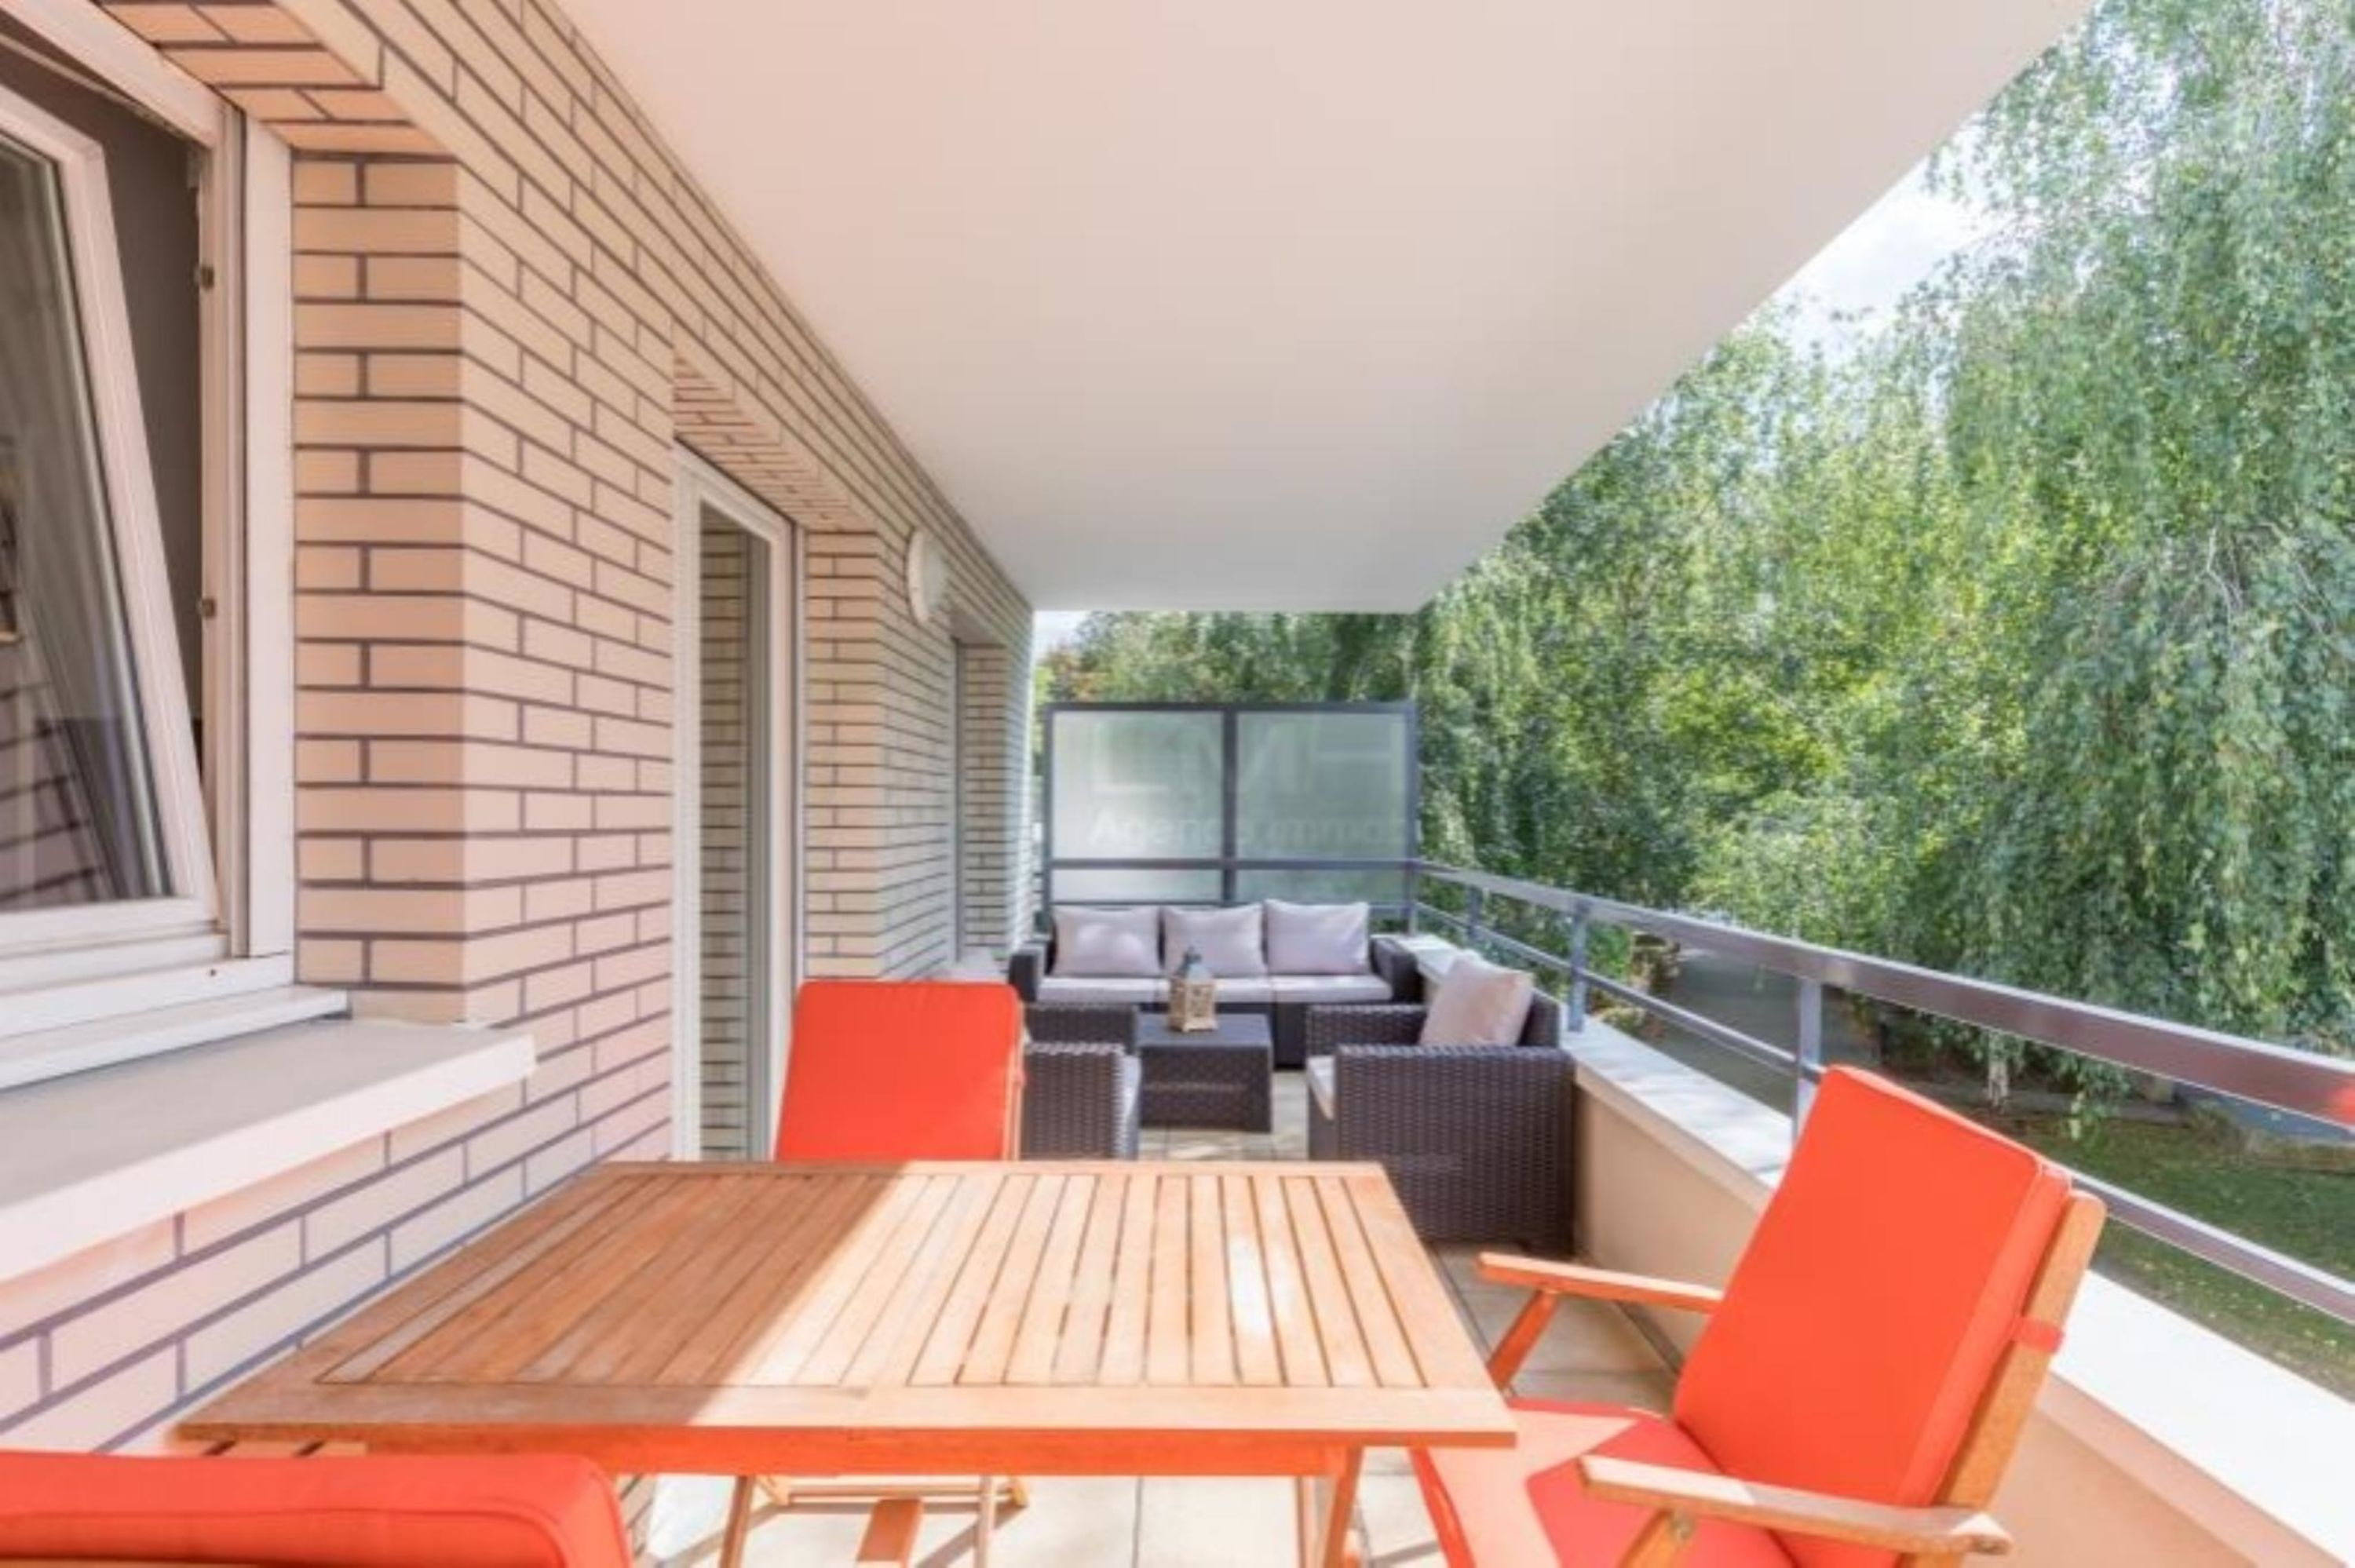 agence immobilière sevres 92 le chesnay 78 achat vente location appartement maison immobilier LMHT ANF KWRXUOHS